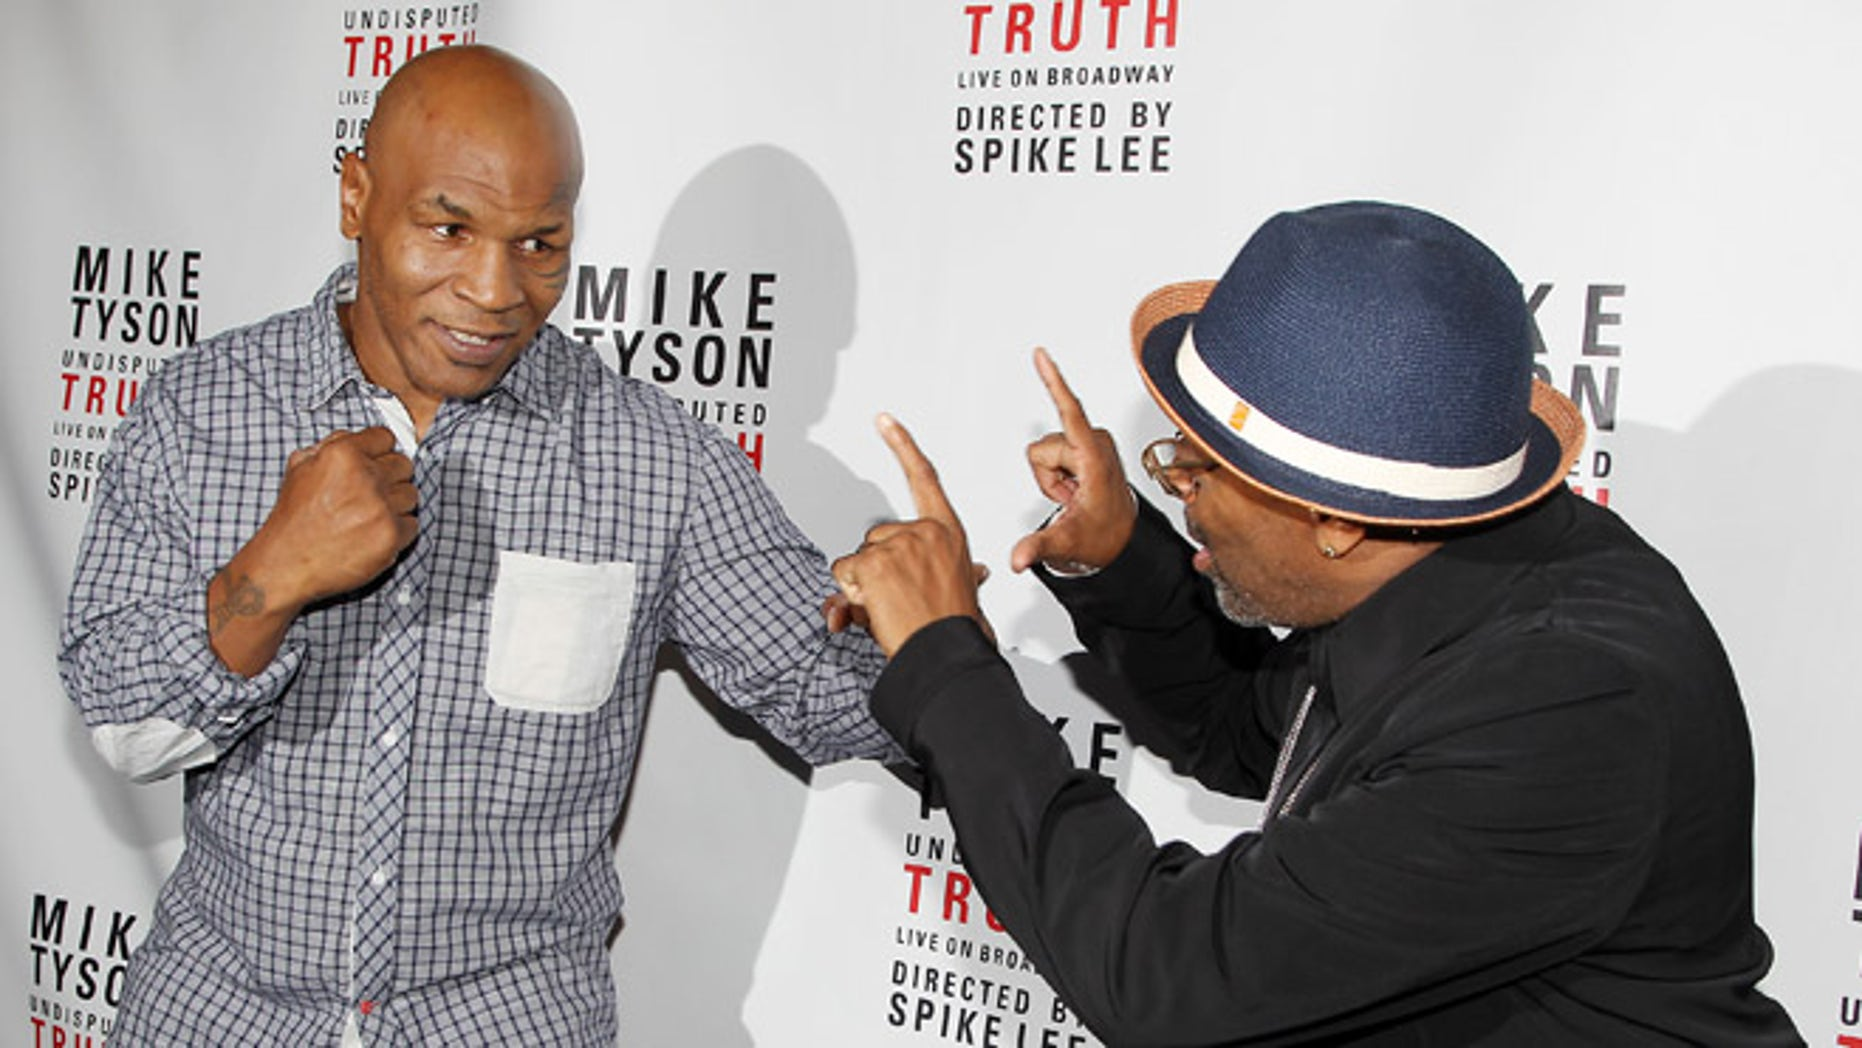 Aug. 2: Mike Tyson, left, and Spike Lee pose backstage after the curtain call on the opening night of 'Mike Tyson: Undisputed Truth' at the Longacre Theatre in New York.